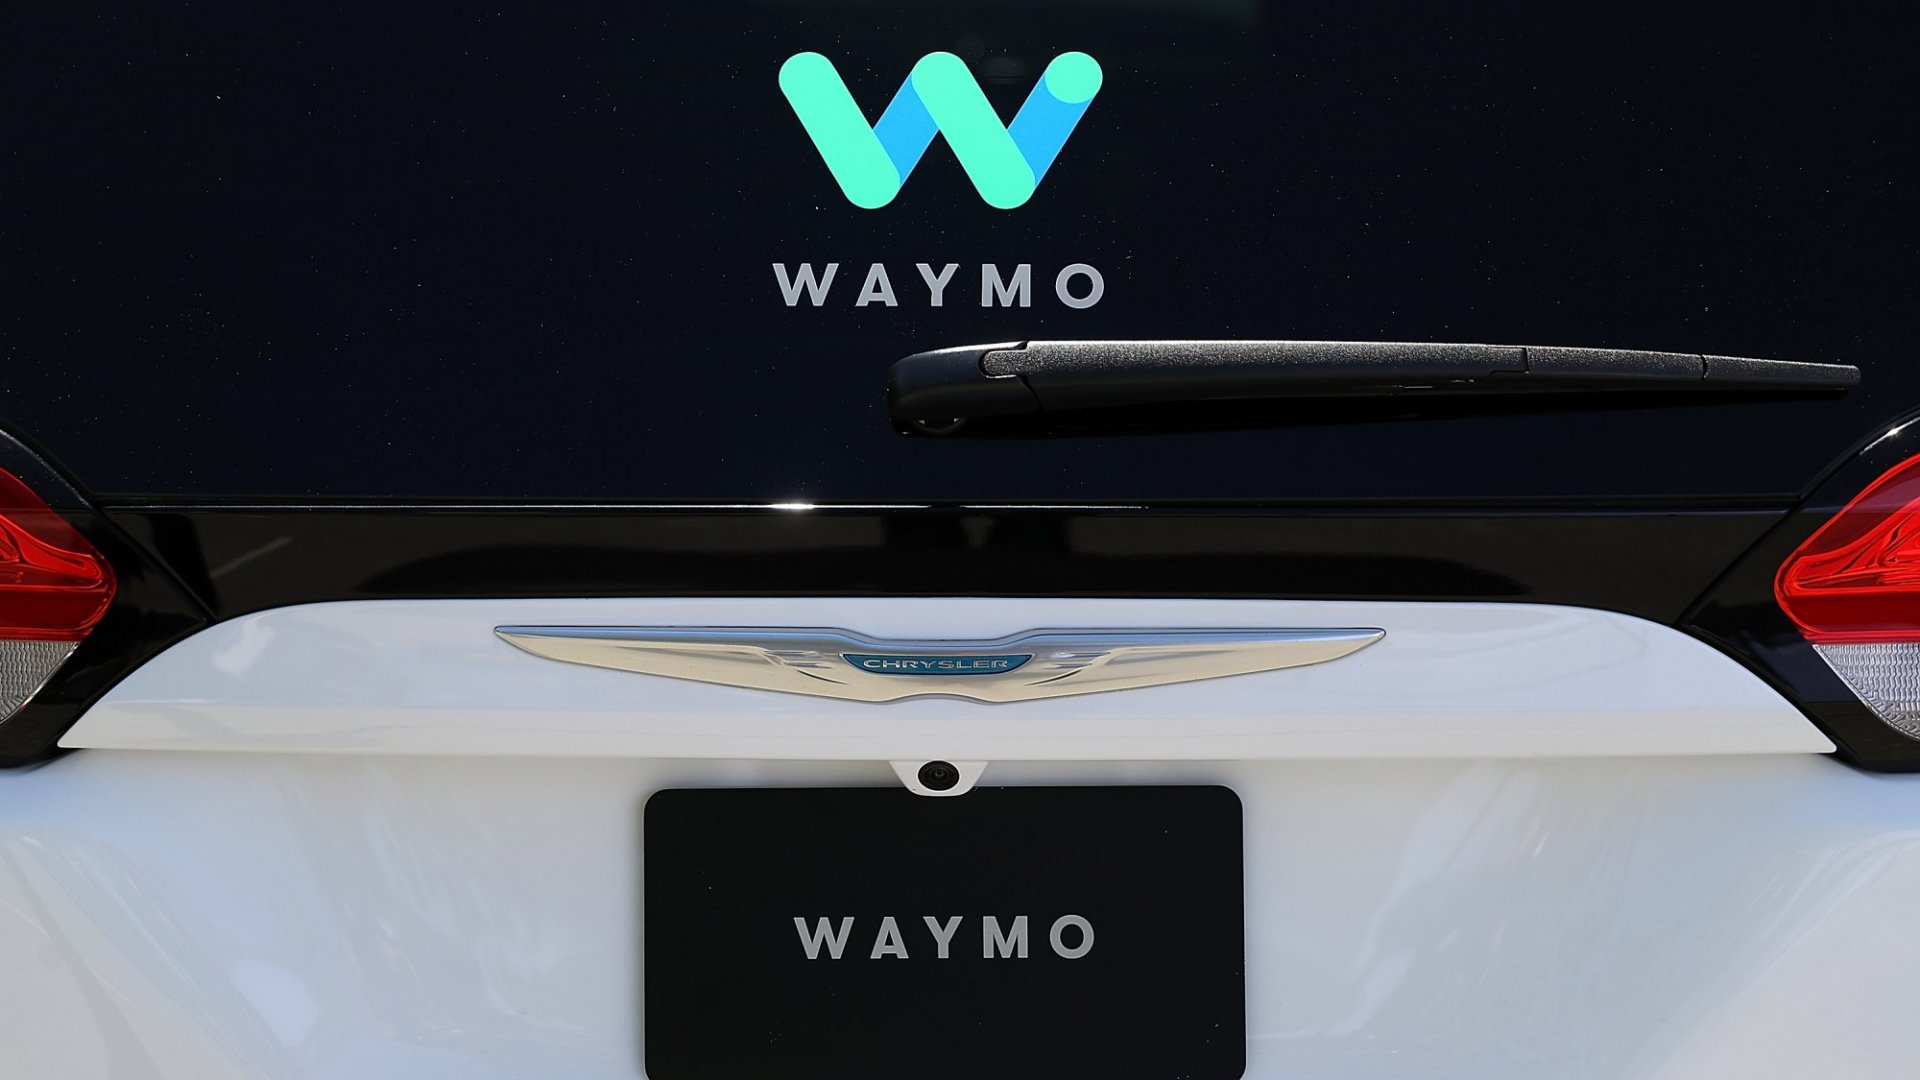 Waymo One Launches To BringDriverless Cars to the Public, But You're Not Invited (Yet)